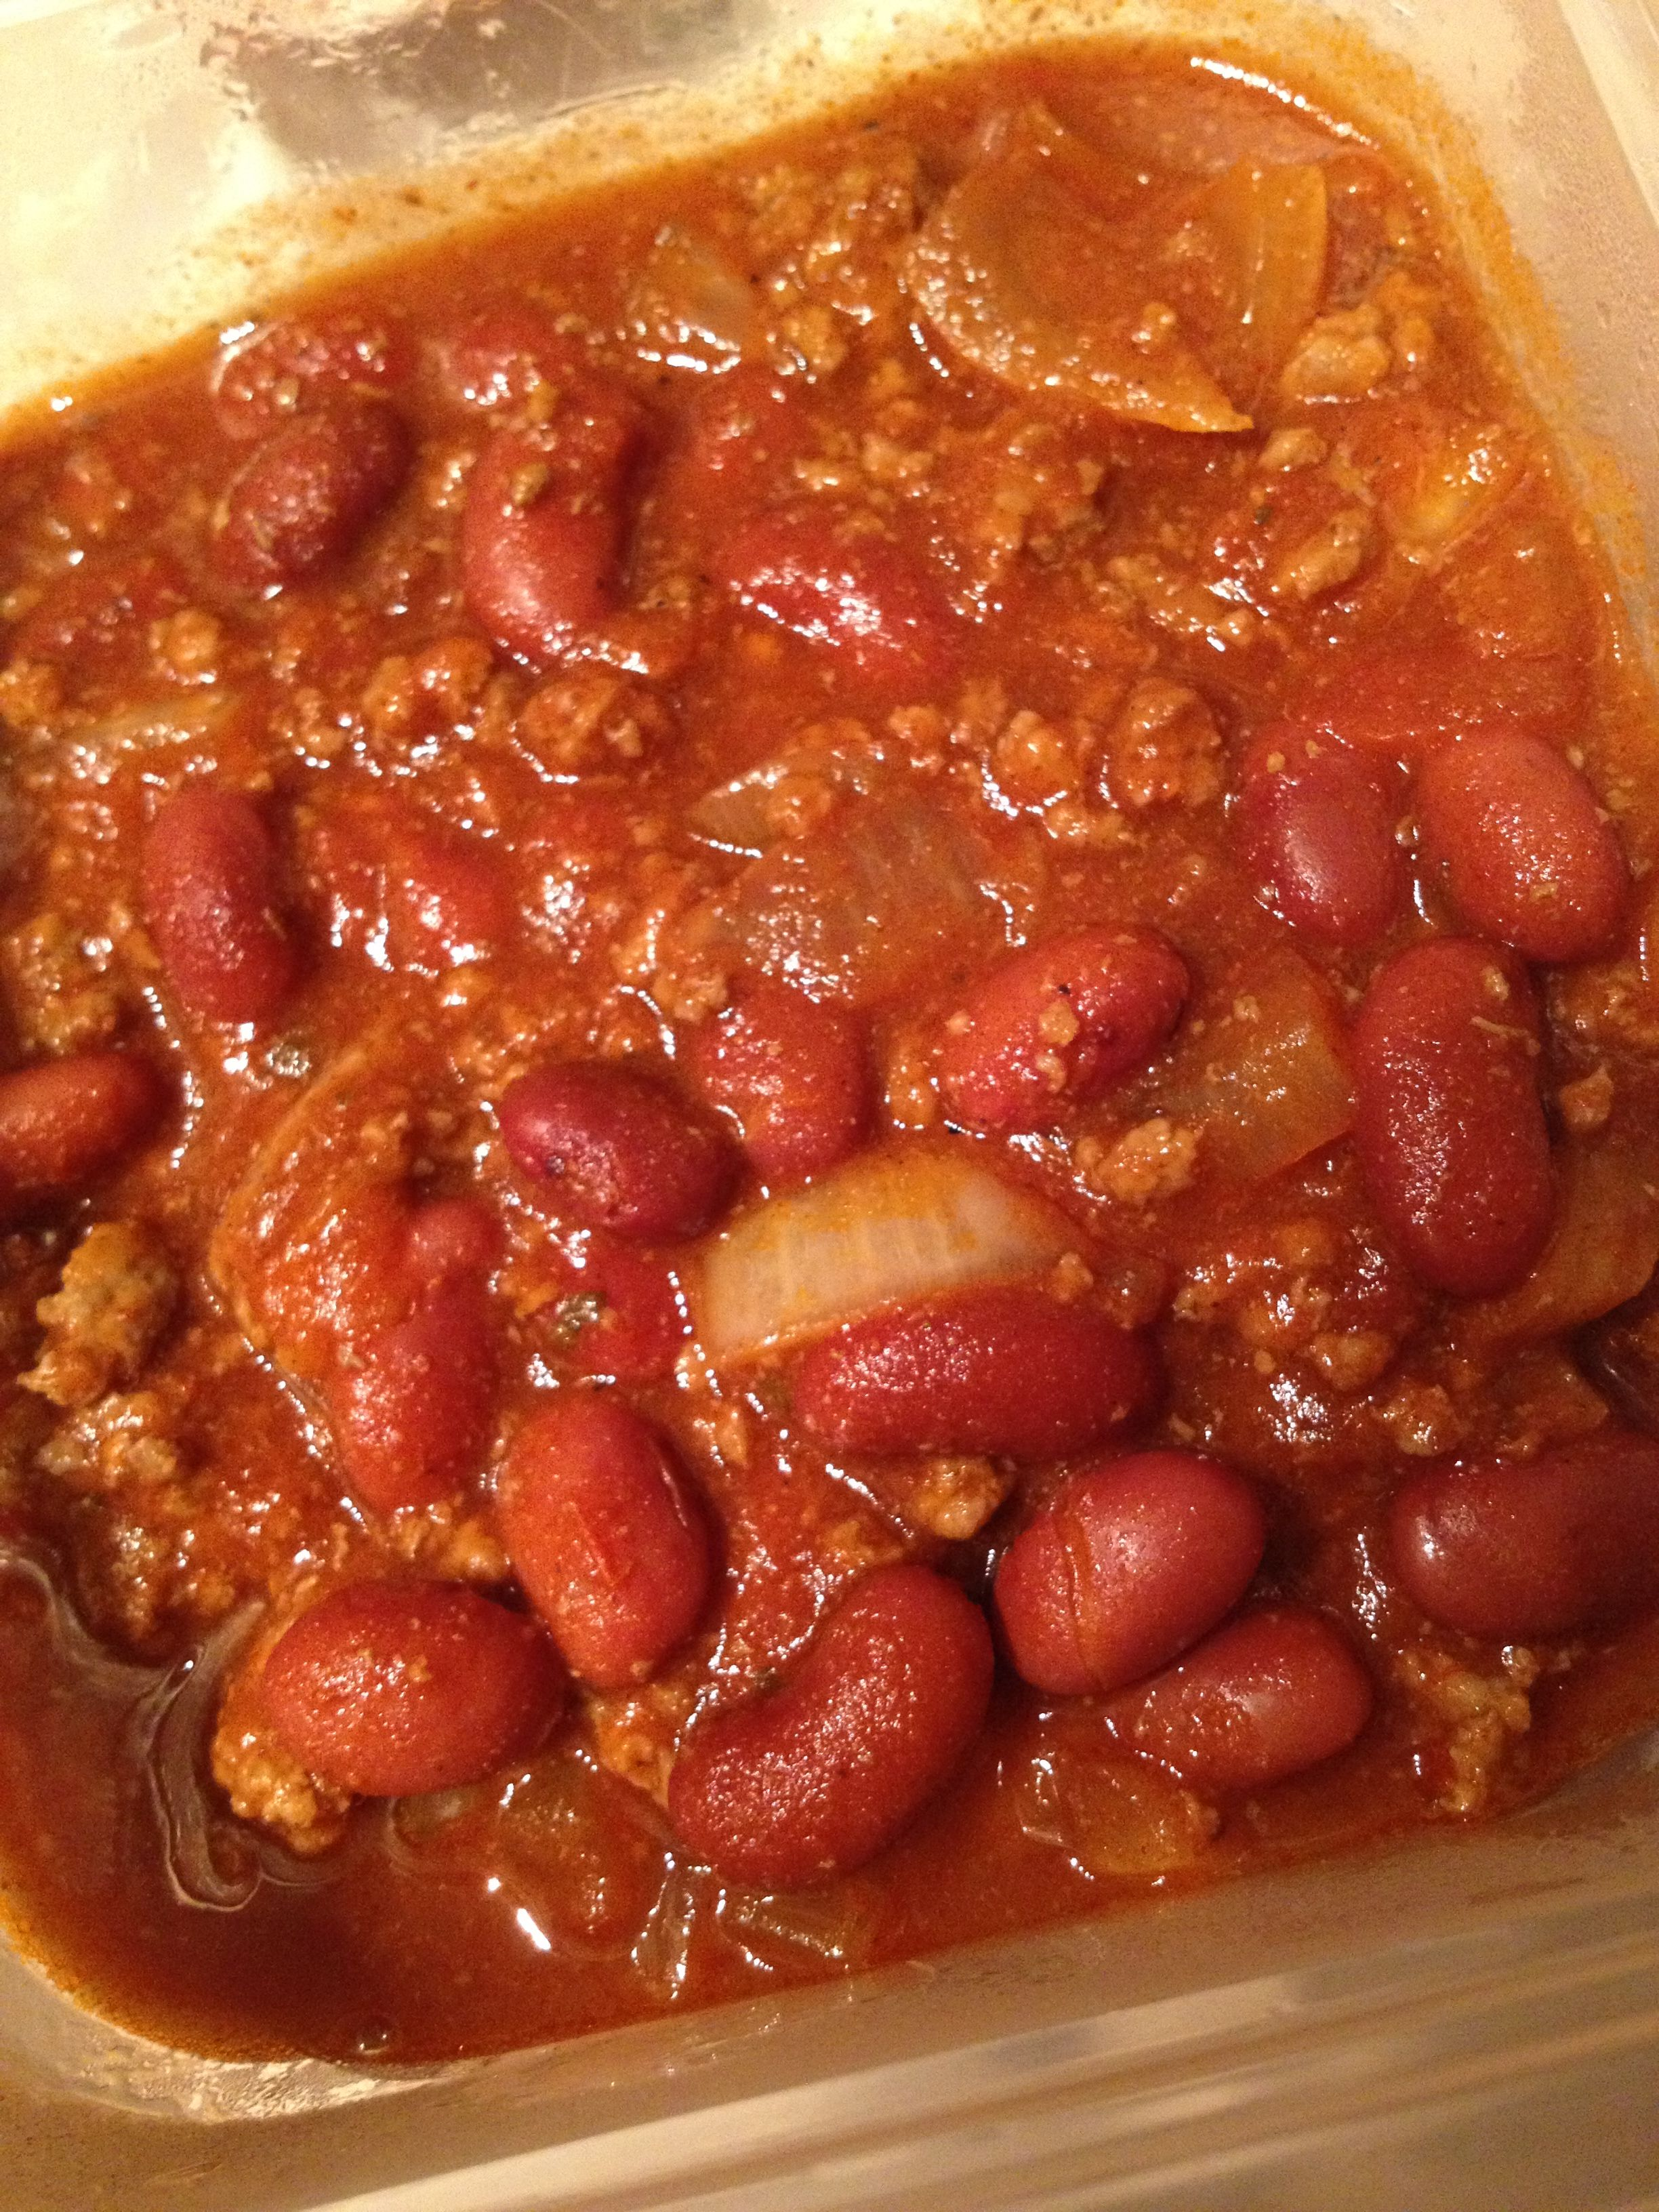 1 1 2 Lean Ground Beef 2 Can Red Kidney Beans Rinsed 1 Can 16 Oz No Salt Added Tomato Sauce 1 1 2 Cups Salsa 1 Onion 2 Bean Recipes Food Red Kidney Bean